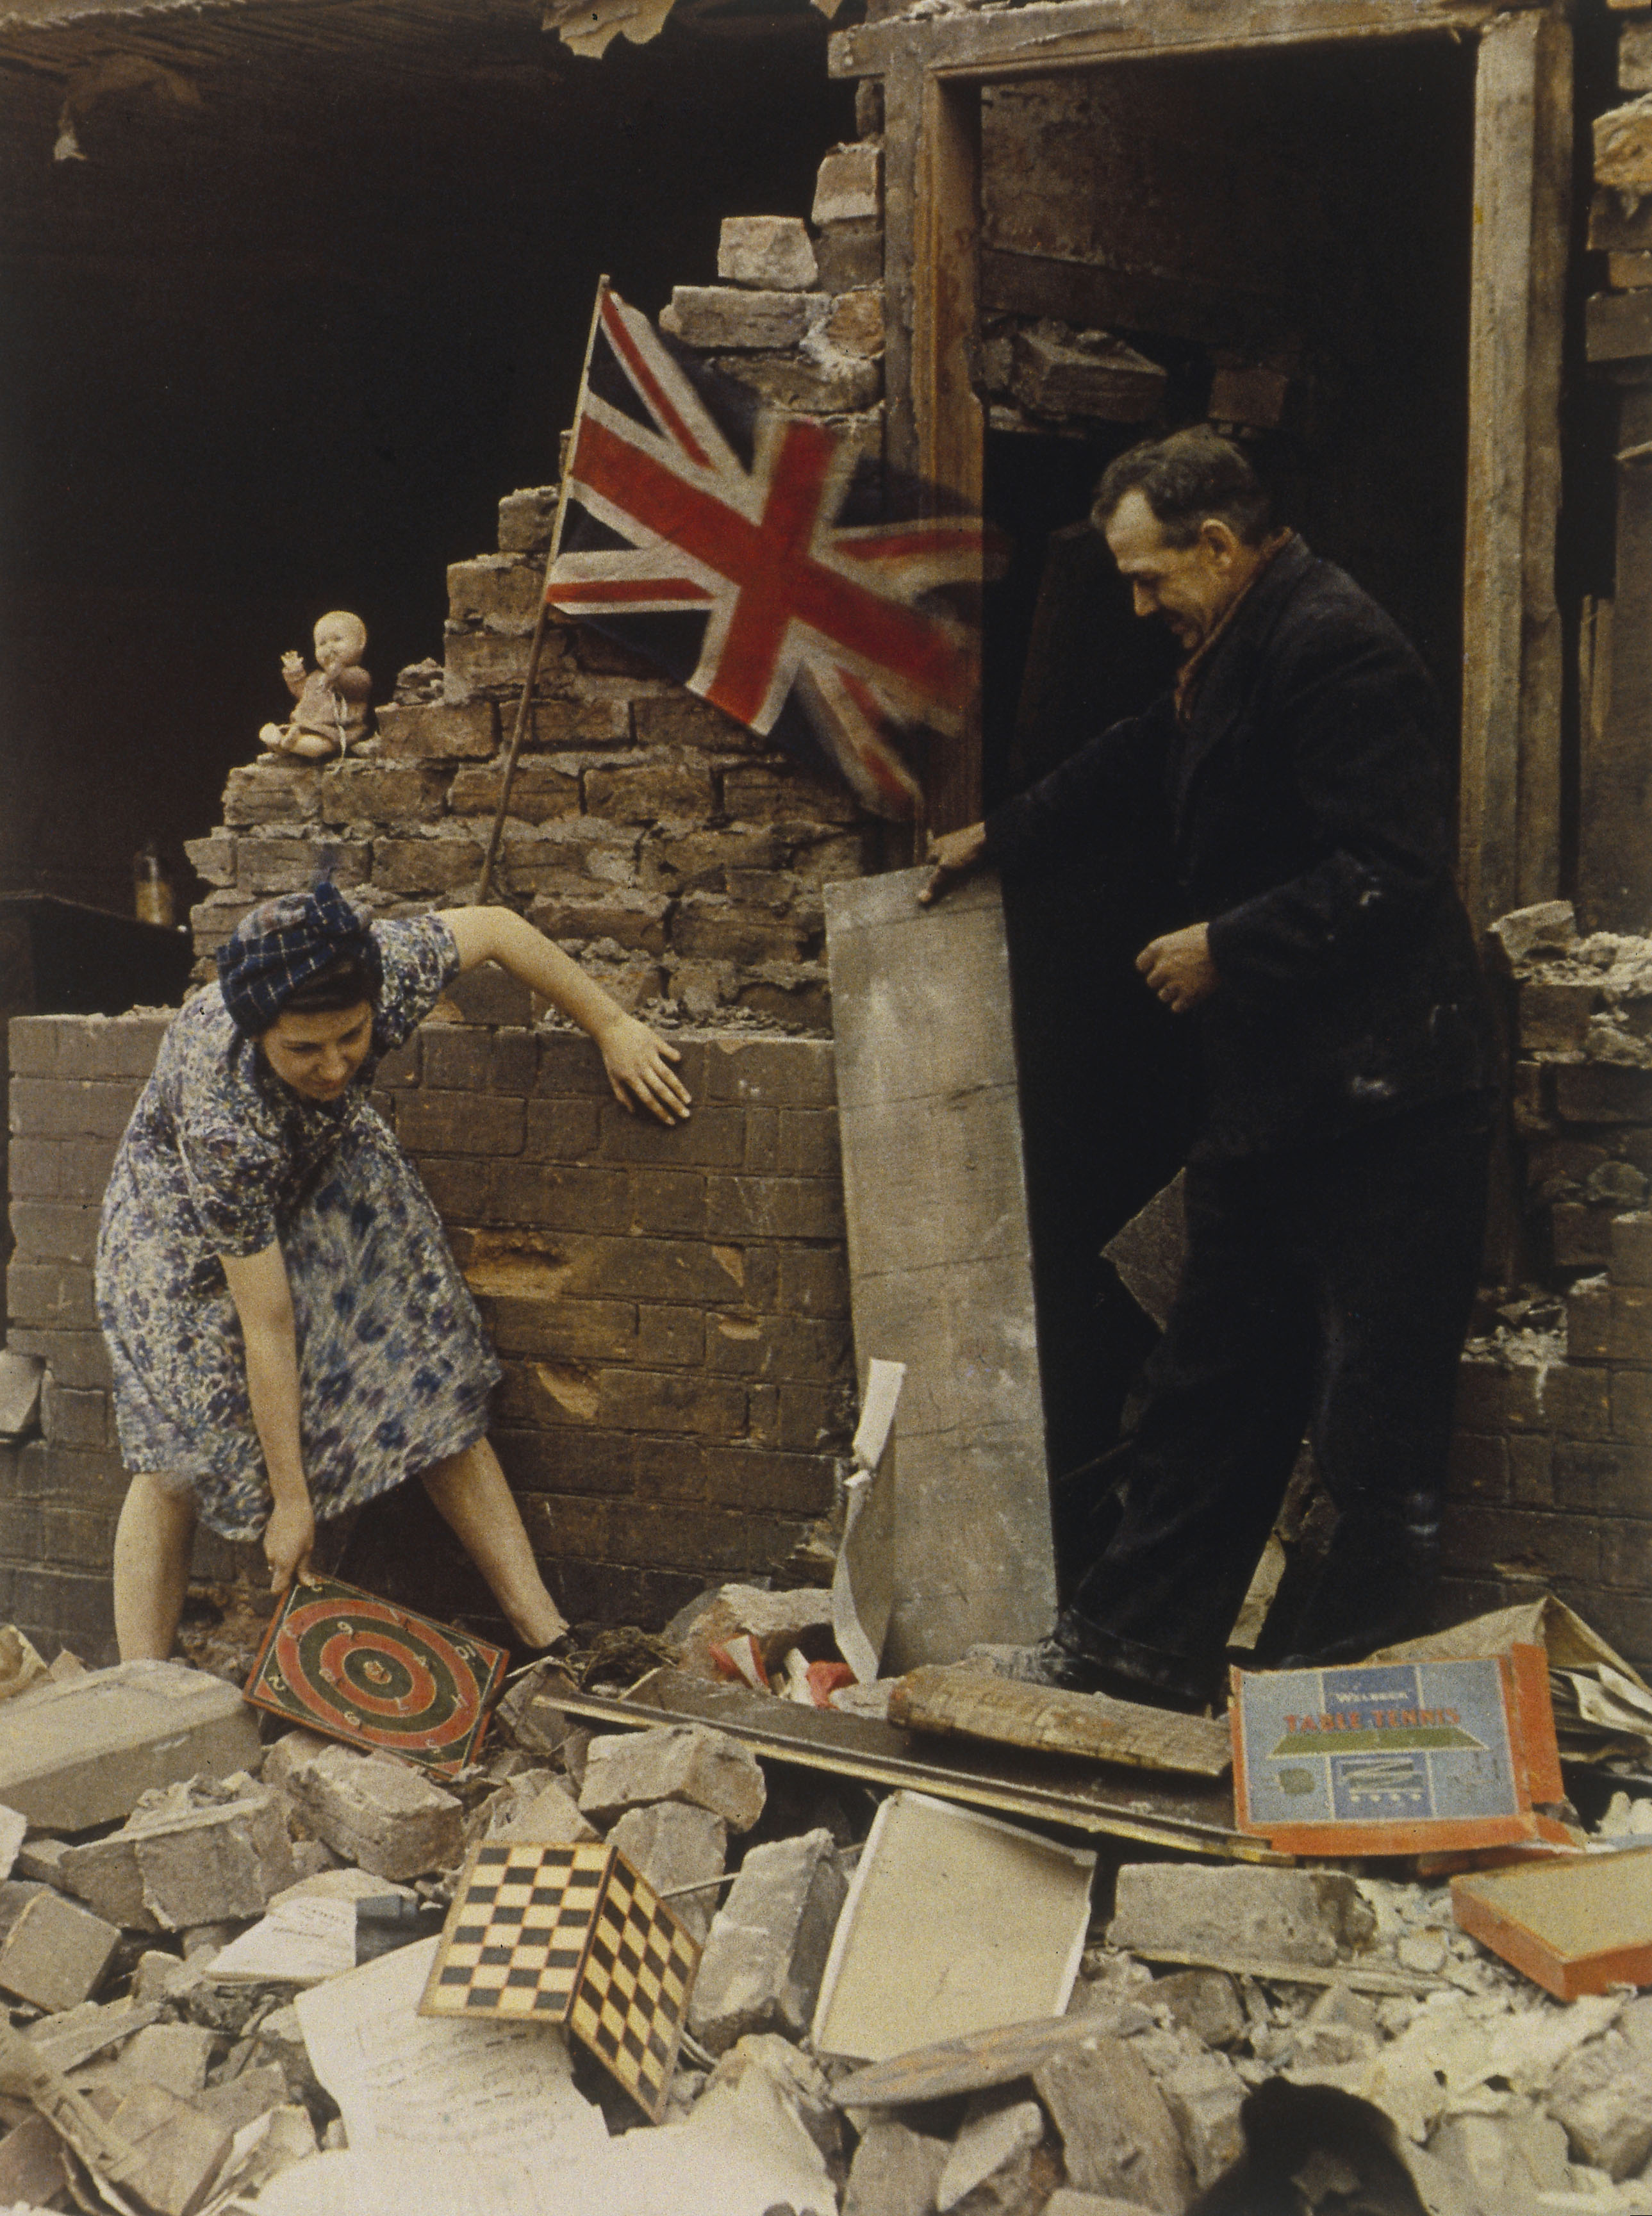 Woman saving board games from bomb wreckage, London, 1939-1945.